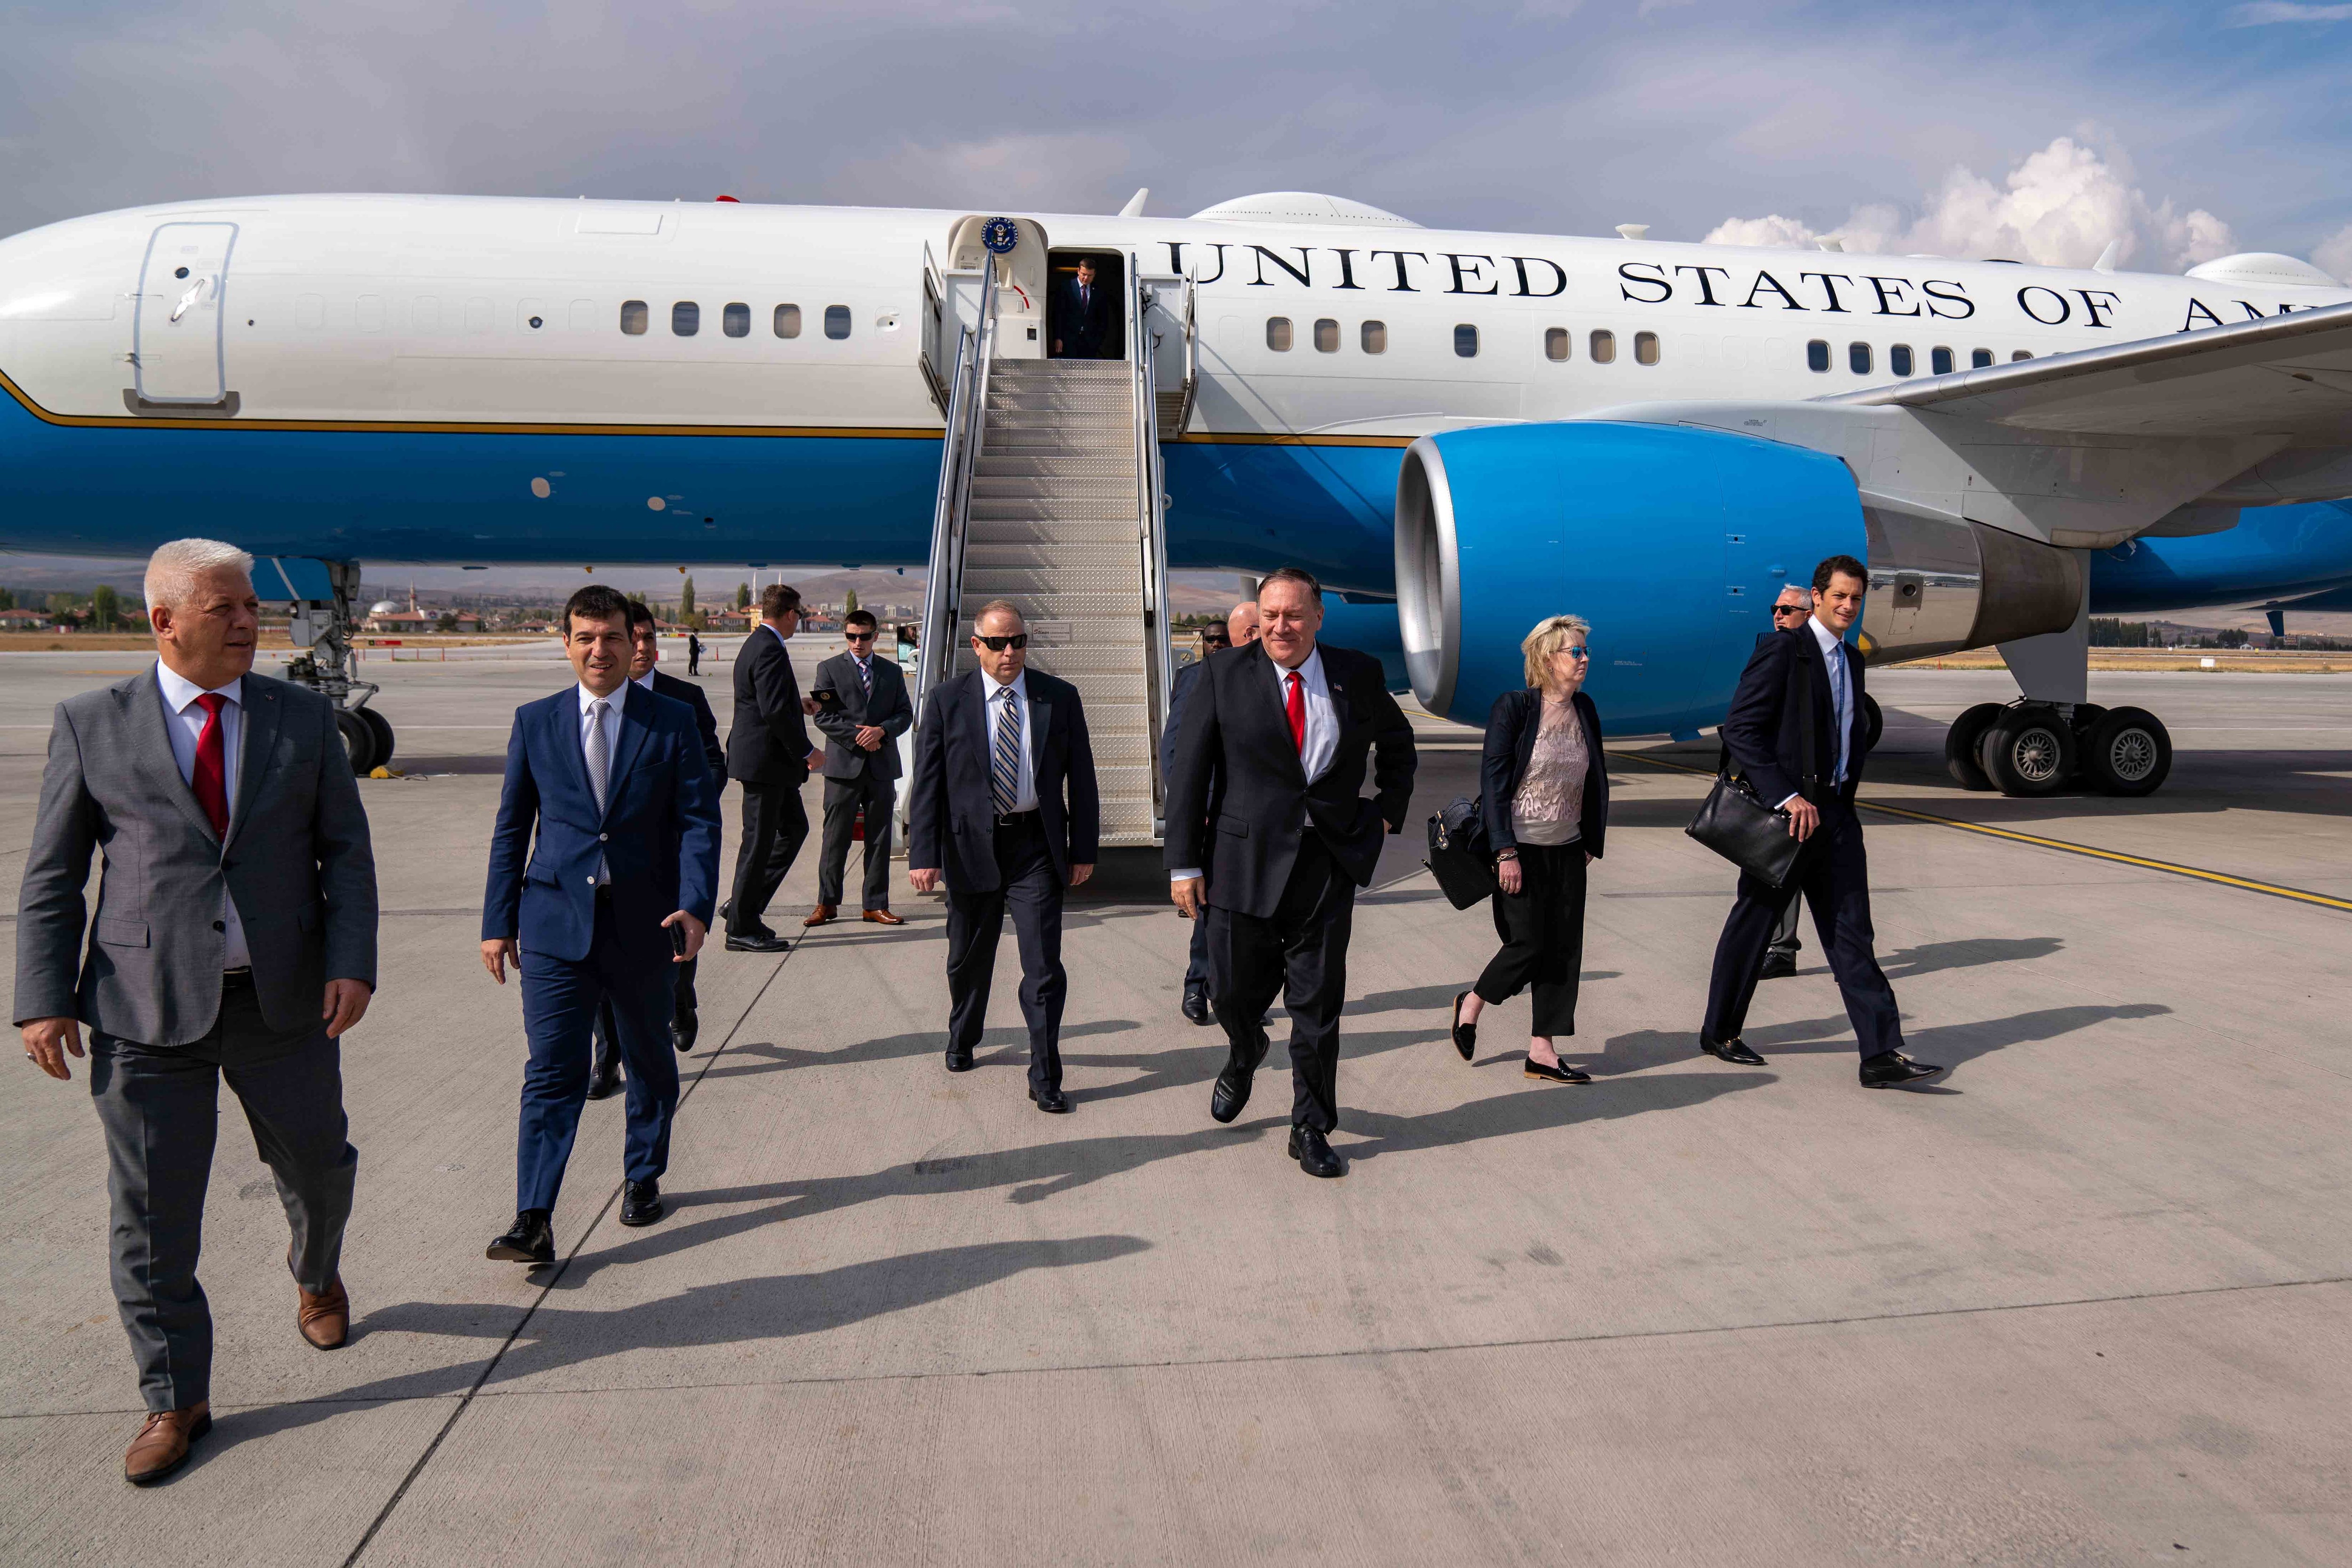 U.S. Secretary of State Michael R. Pompeo arrives in Ankara, Turkey, on October 17, 2019. [State Department Photo by Ron Przysucha/ Public Domain]